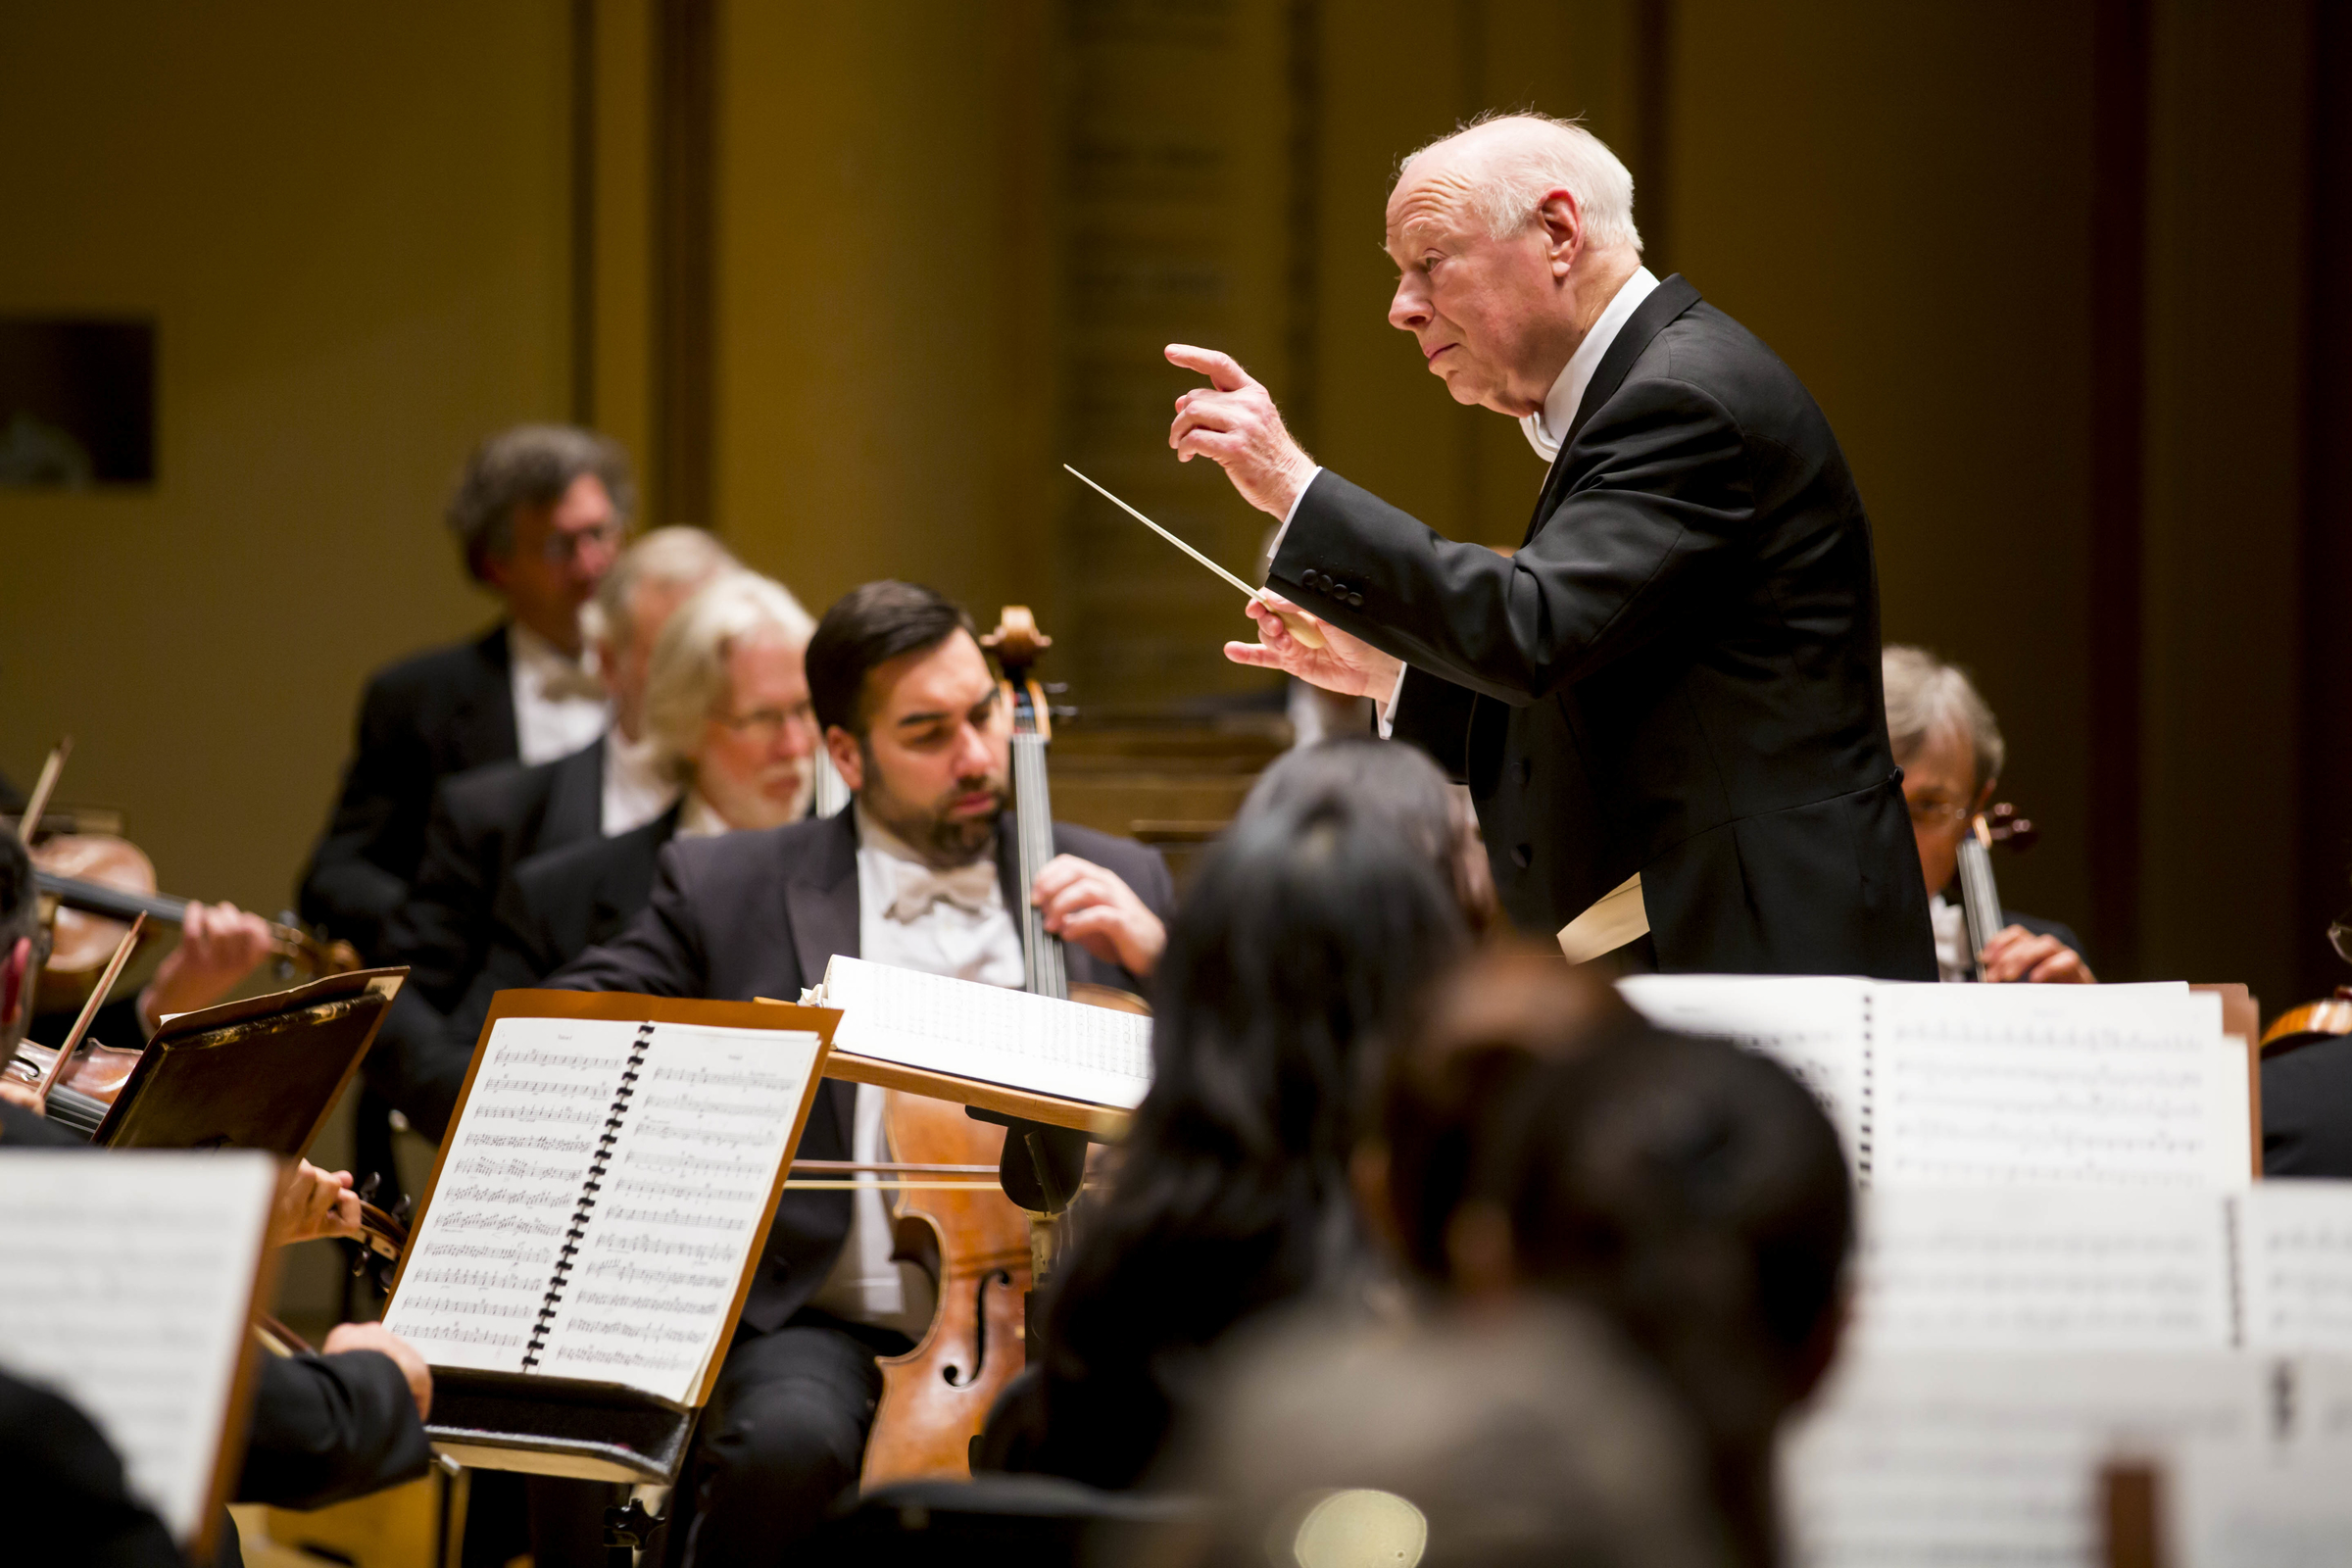 Bernard Haitink conducts the Chicago Symphony Orchestra in 2013.